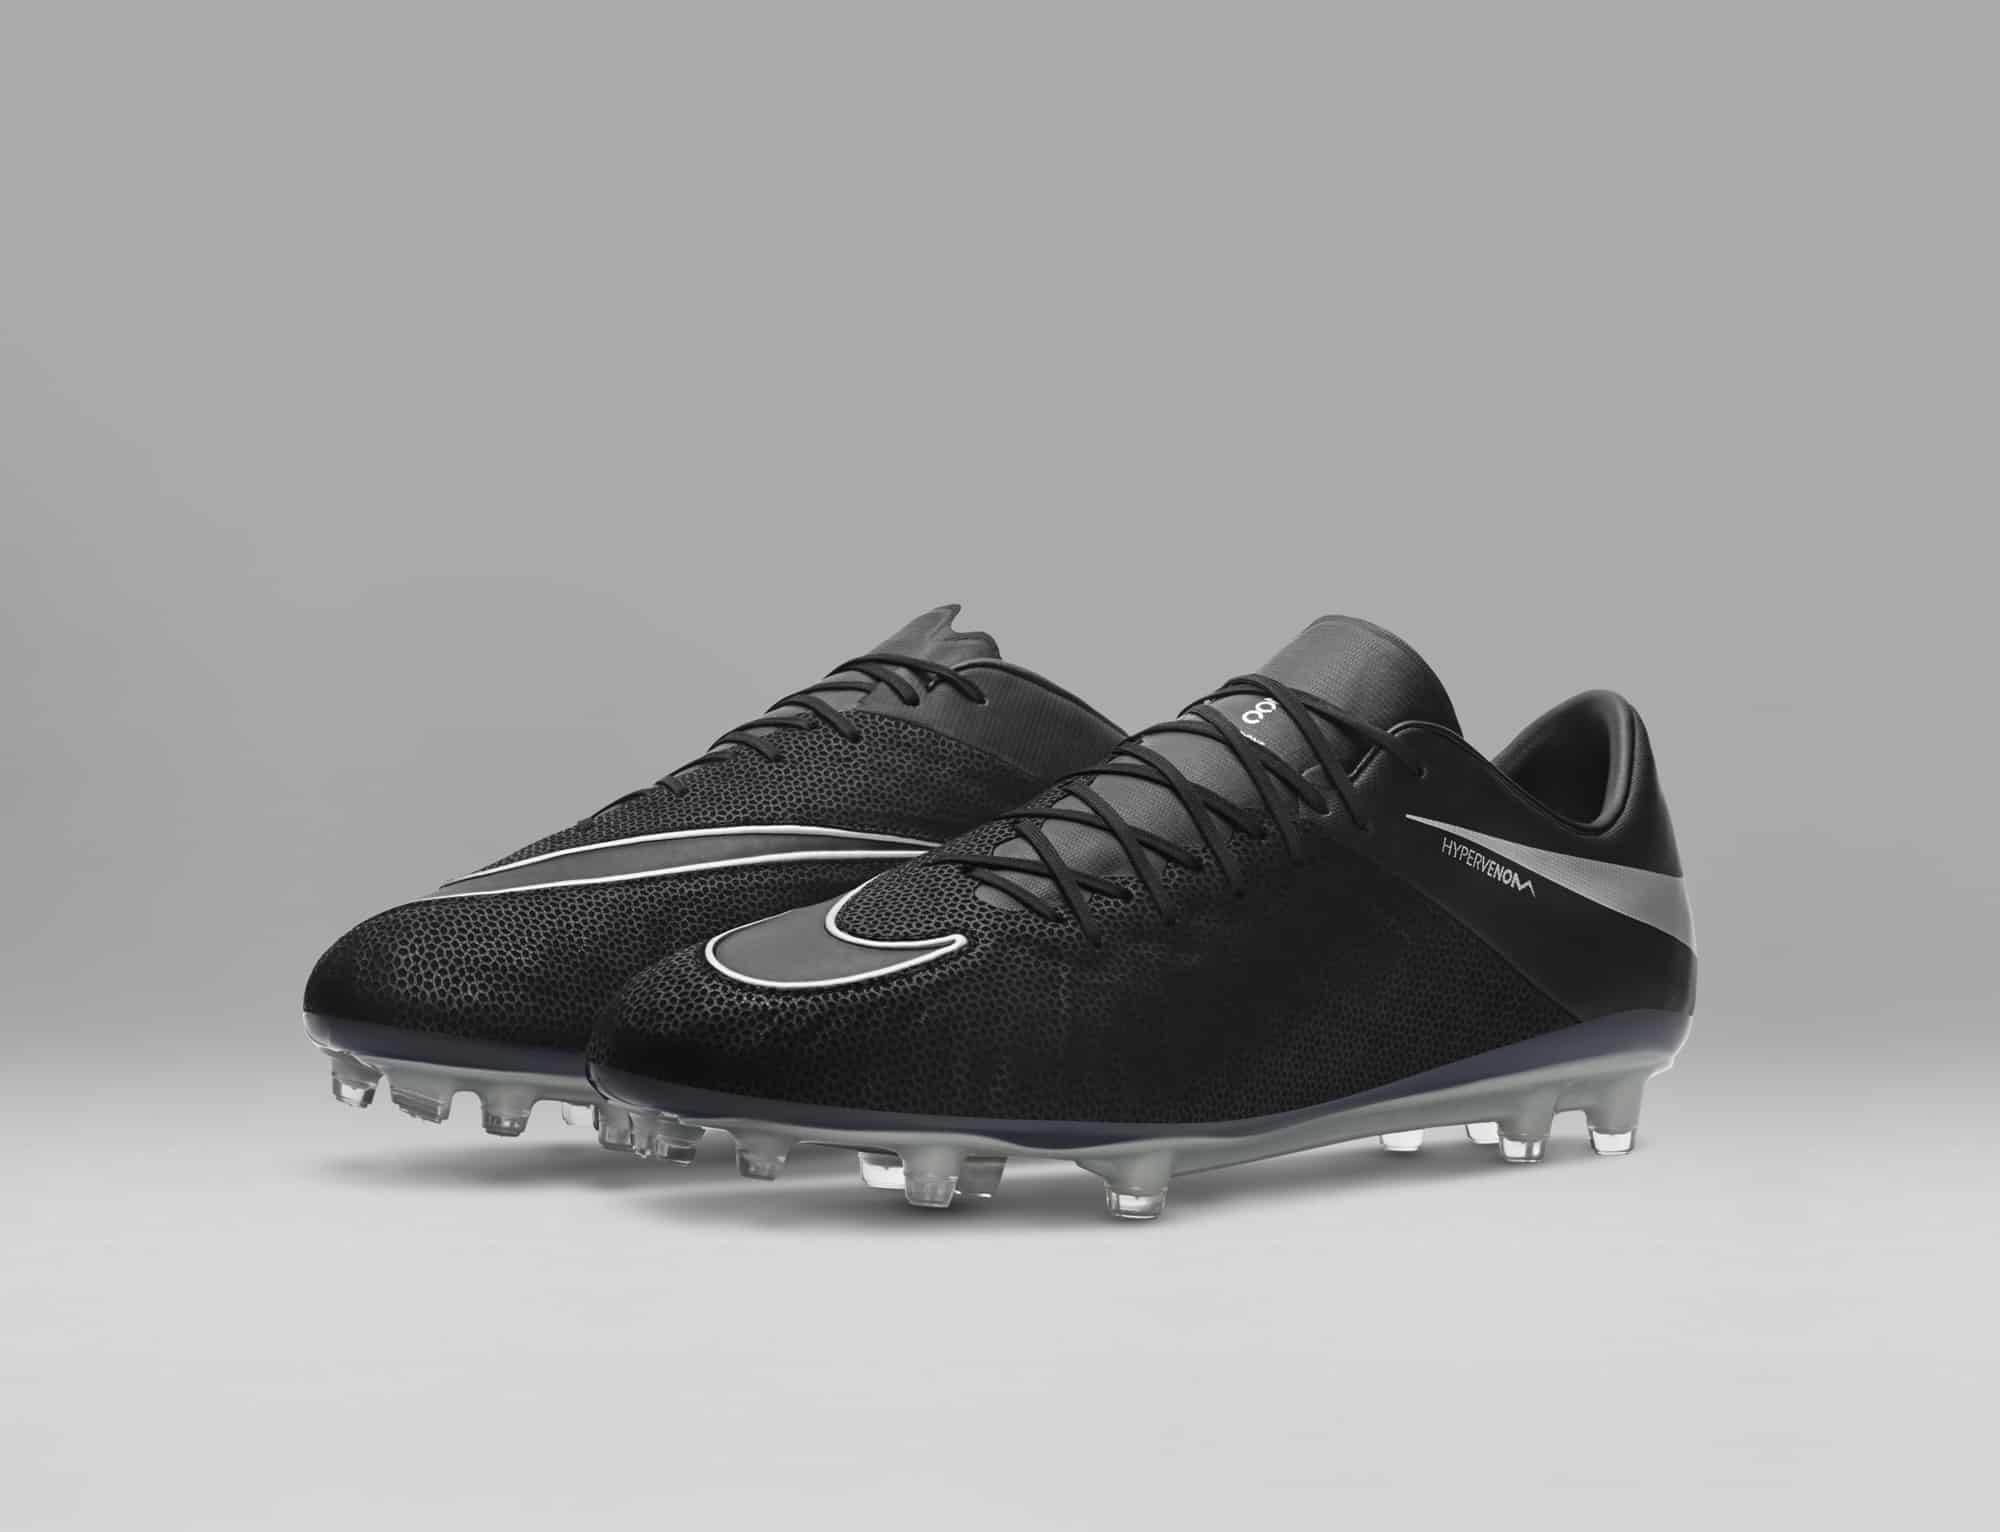 chaussures-football-nike-hypervenom-phinish-2-tech-craft-img1